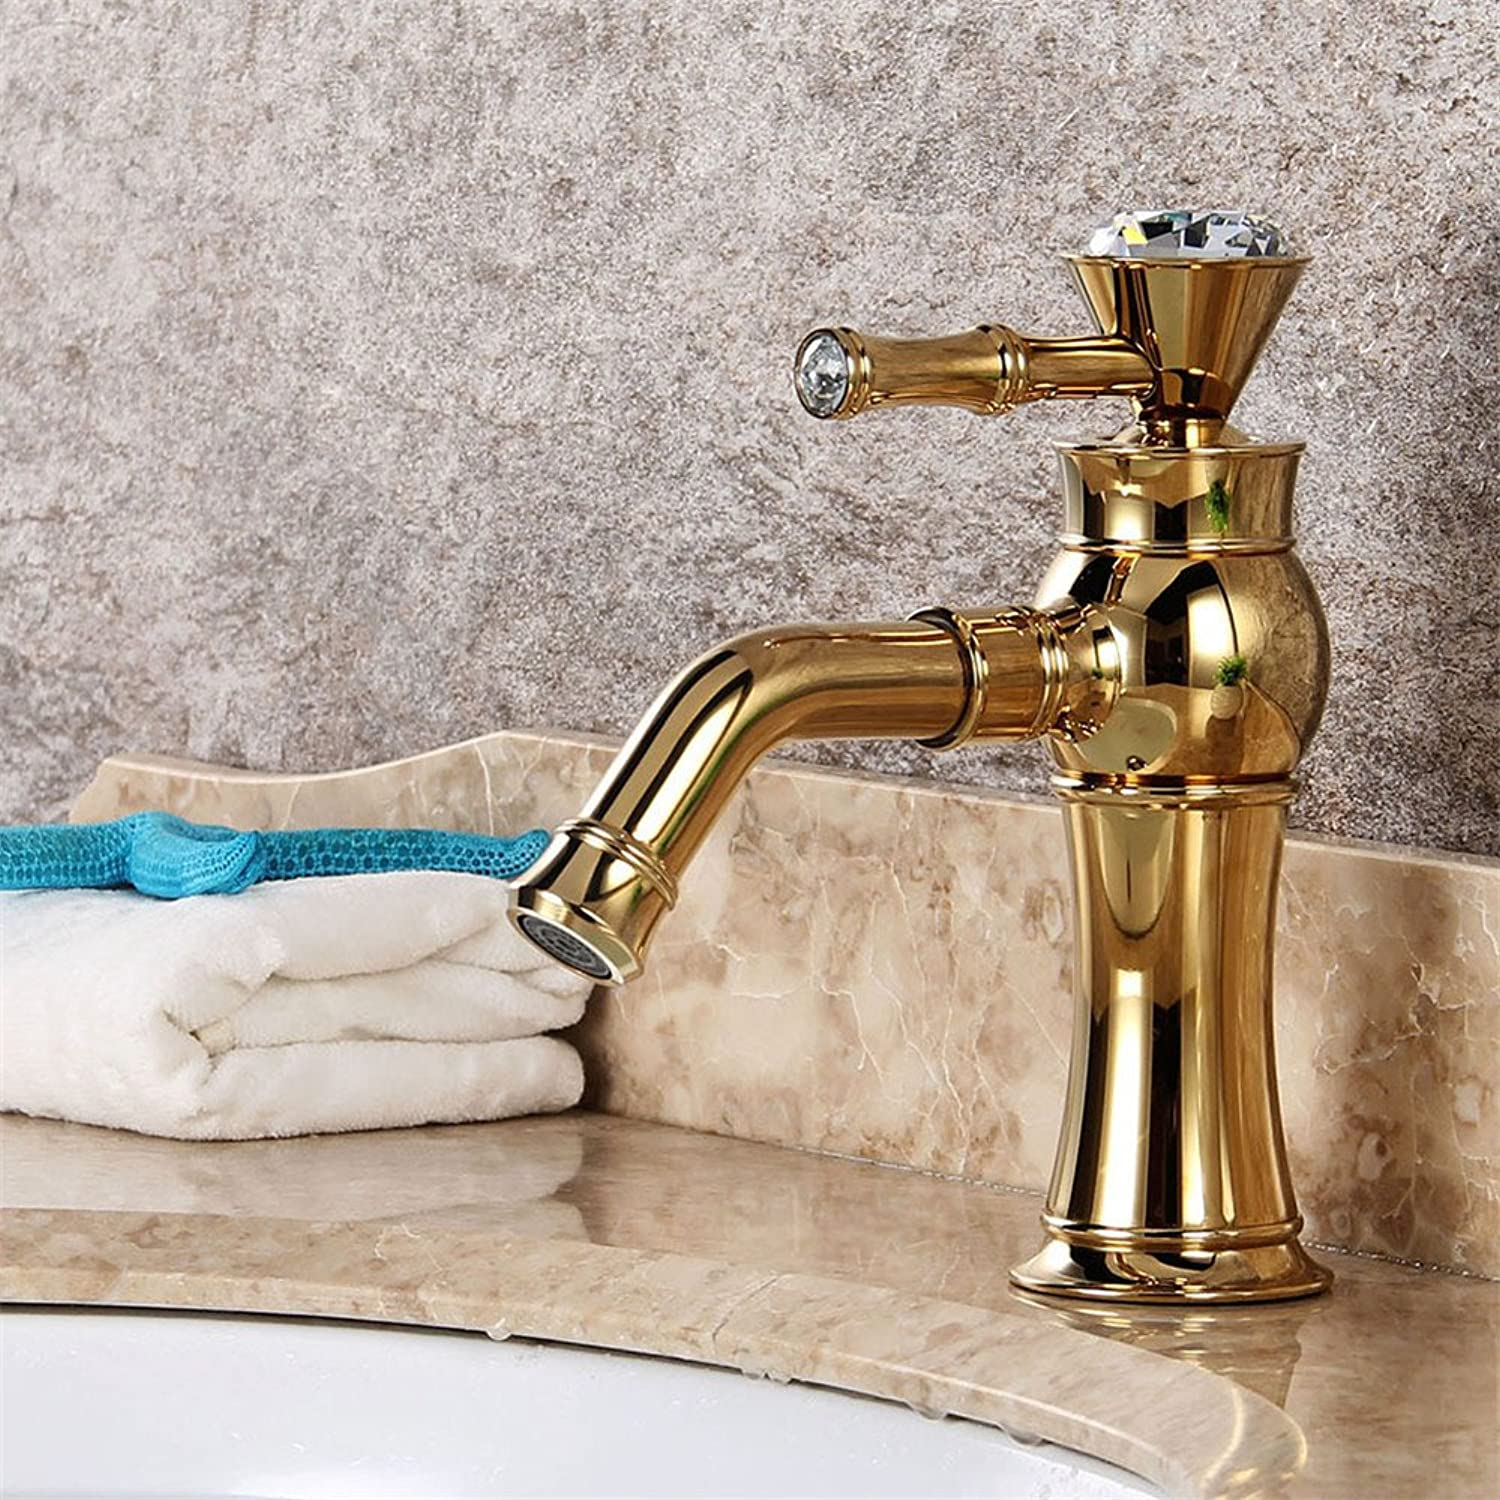 Hlluya Professional Sink Mixer Tap Kitchen Faucet The copper basin faucet golden dragon water drilling and cold water faucet